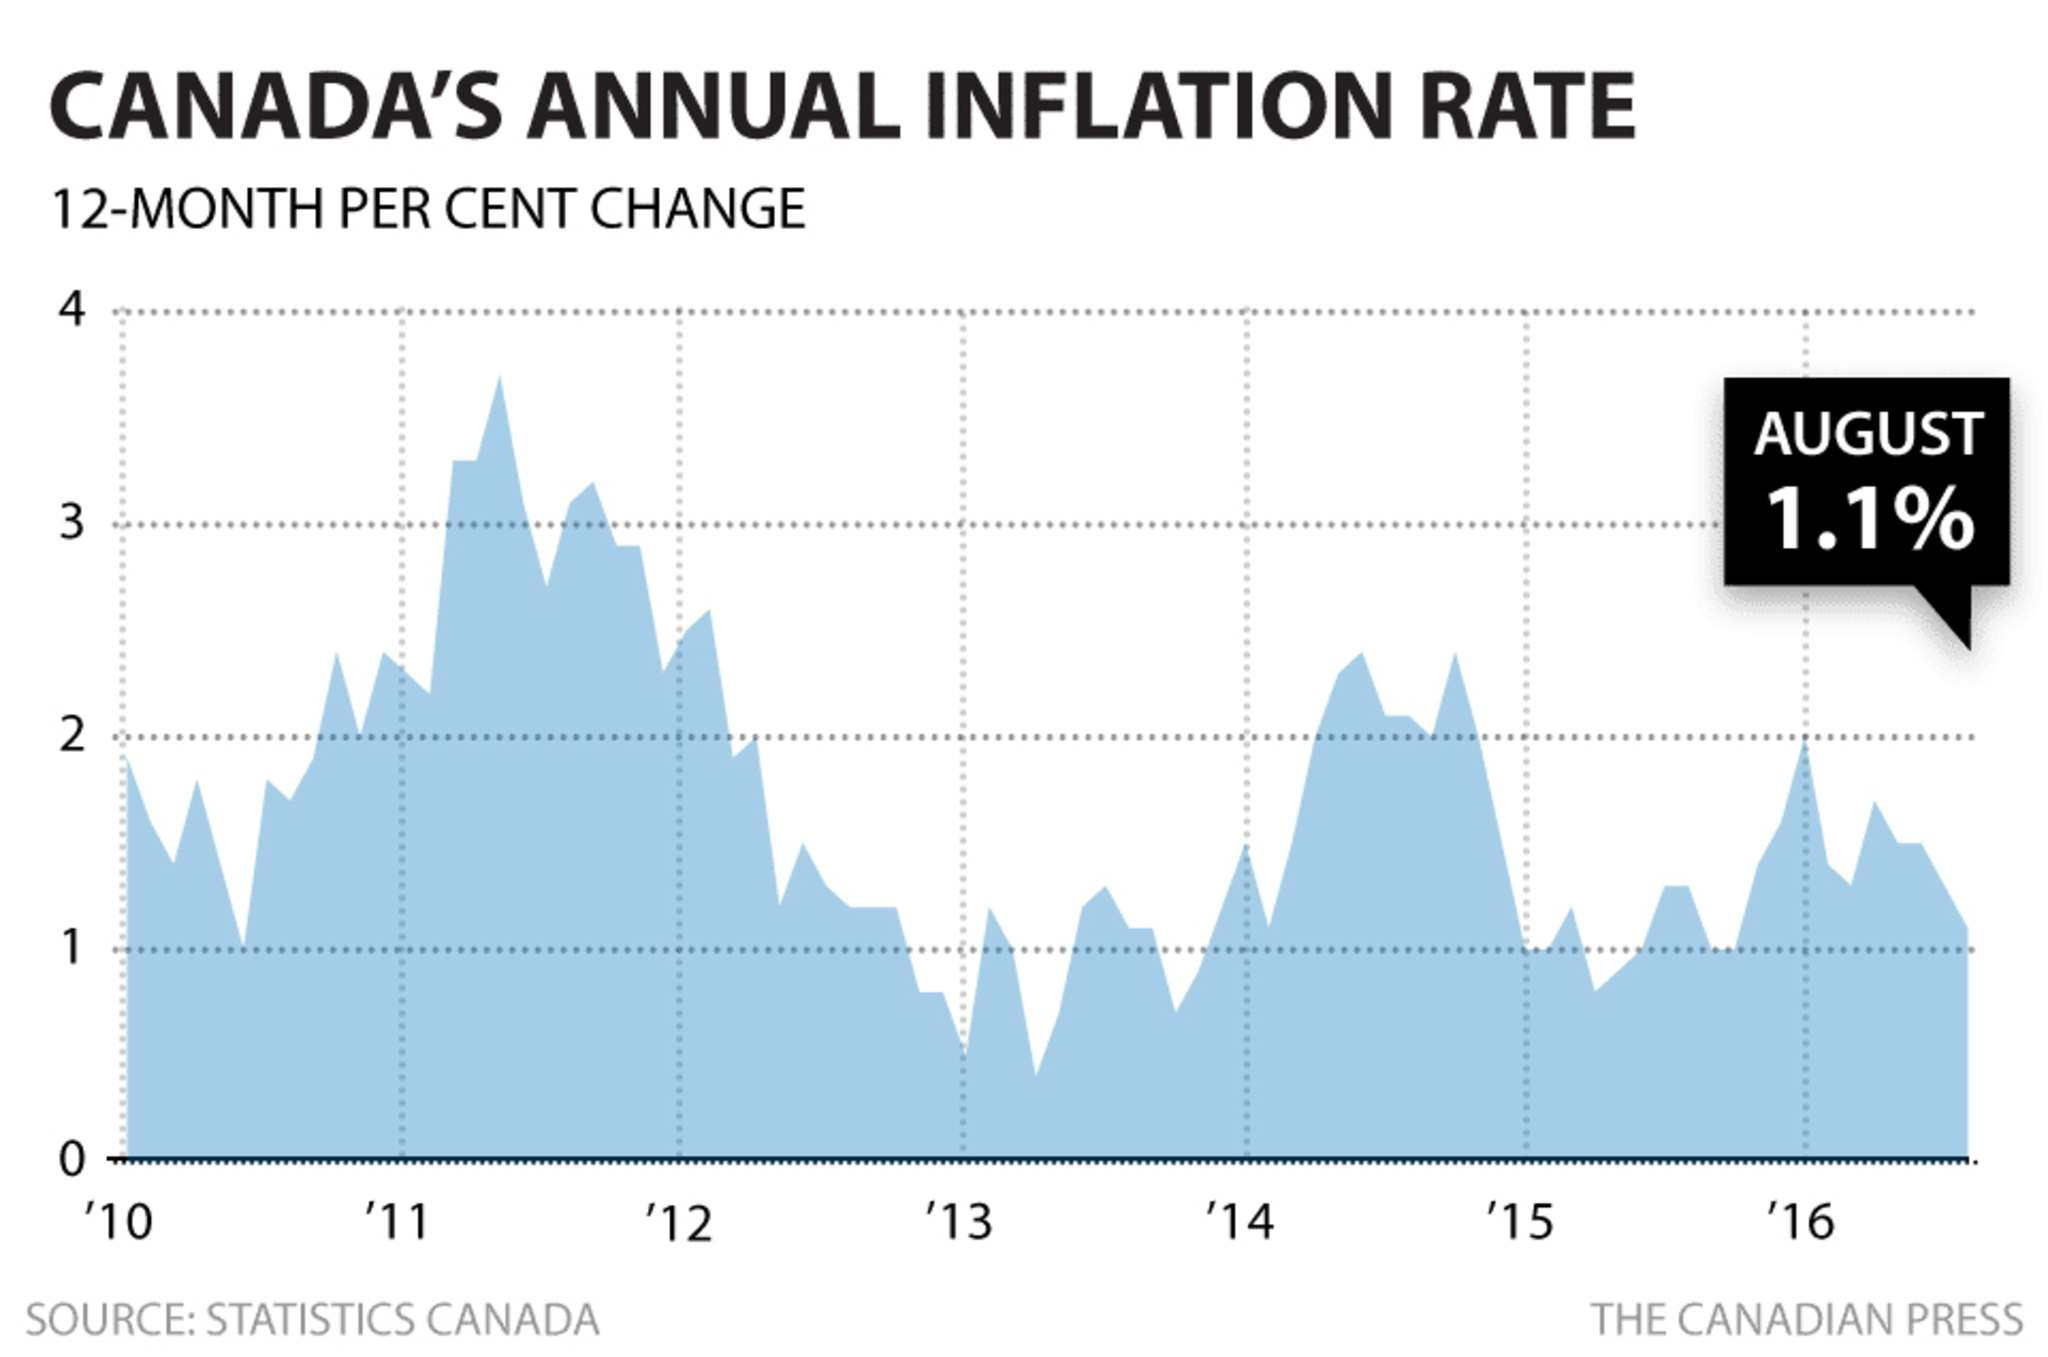 Canada's Annual Inflation Slowed in August